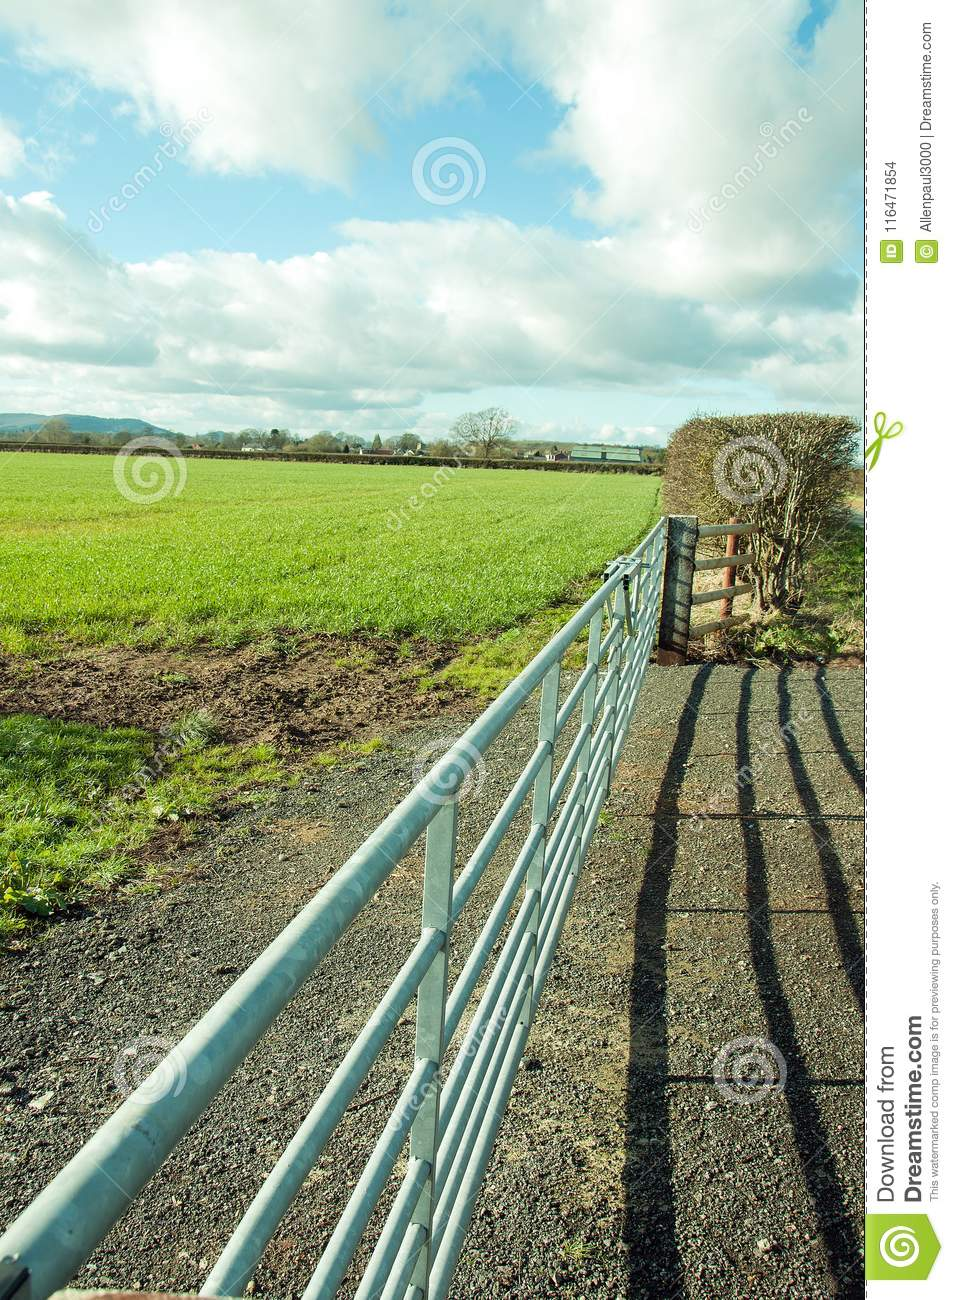 Springtime Agricultural Landscape And A Farm Gate In The